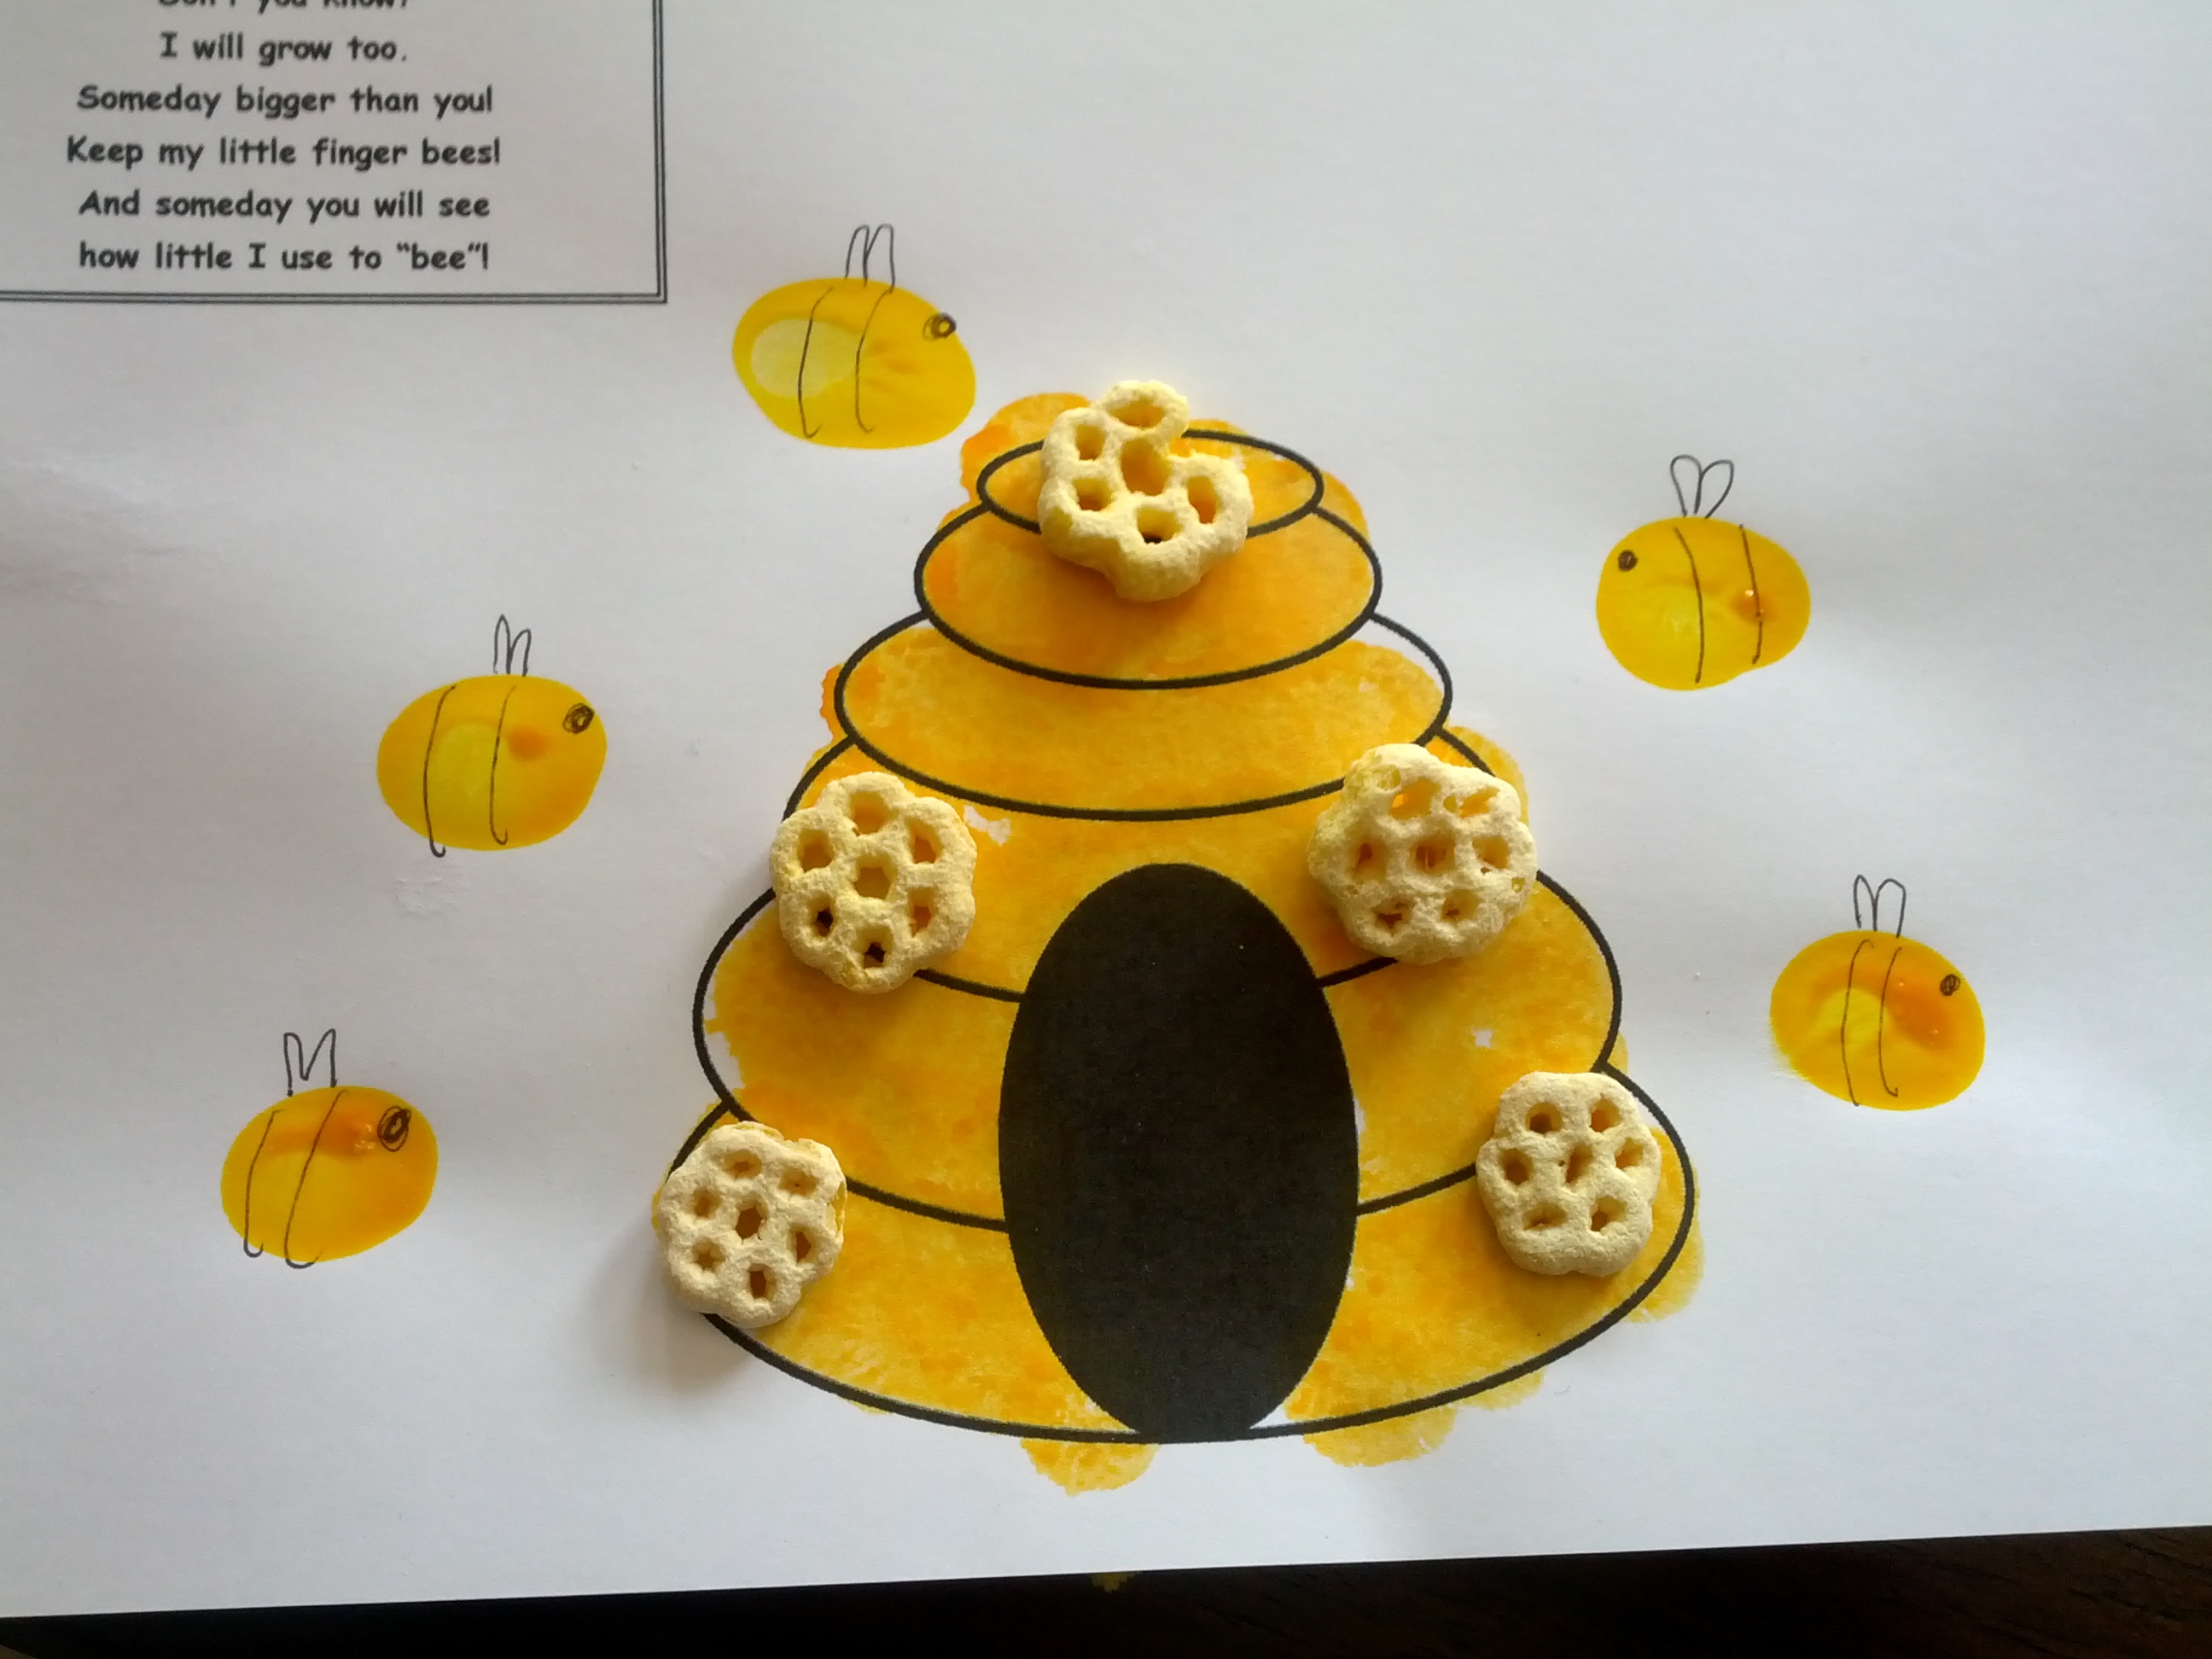 Honey Bee Life Cycle Colouring Pages Page 2 Pictures To Pin On